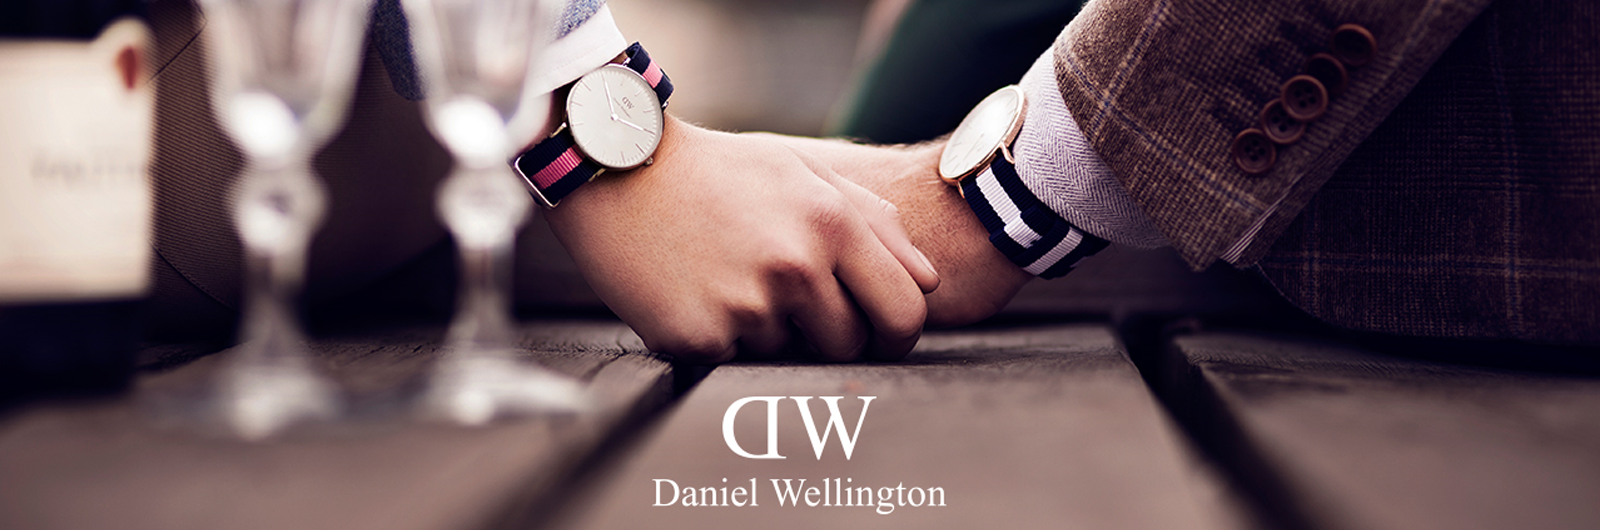 Daniel-Wellington-Oct-2015